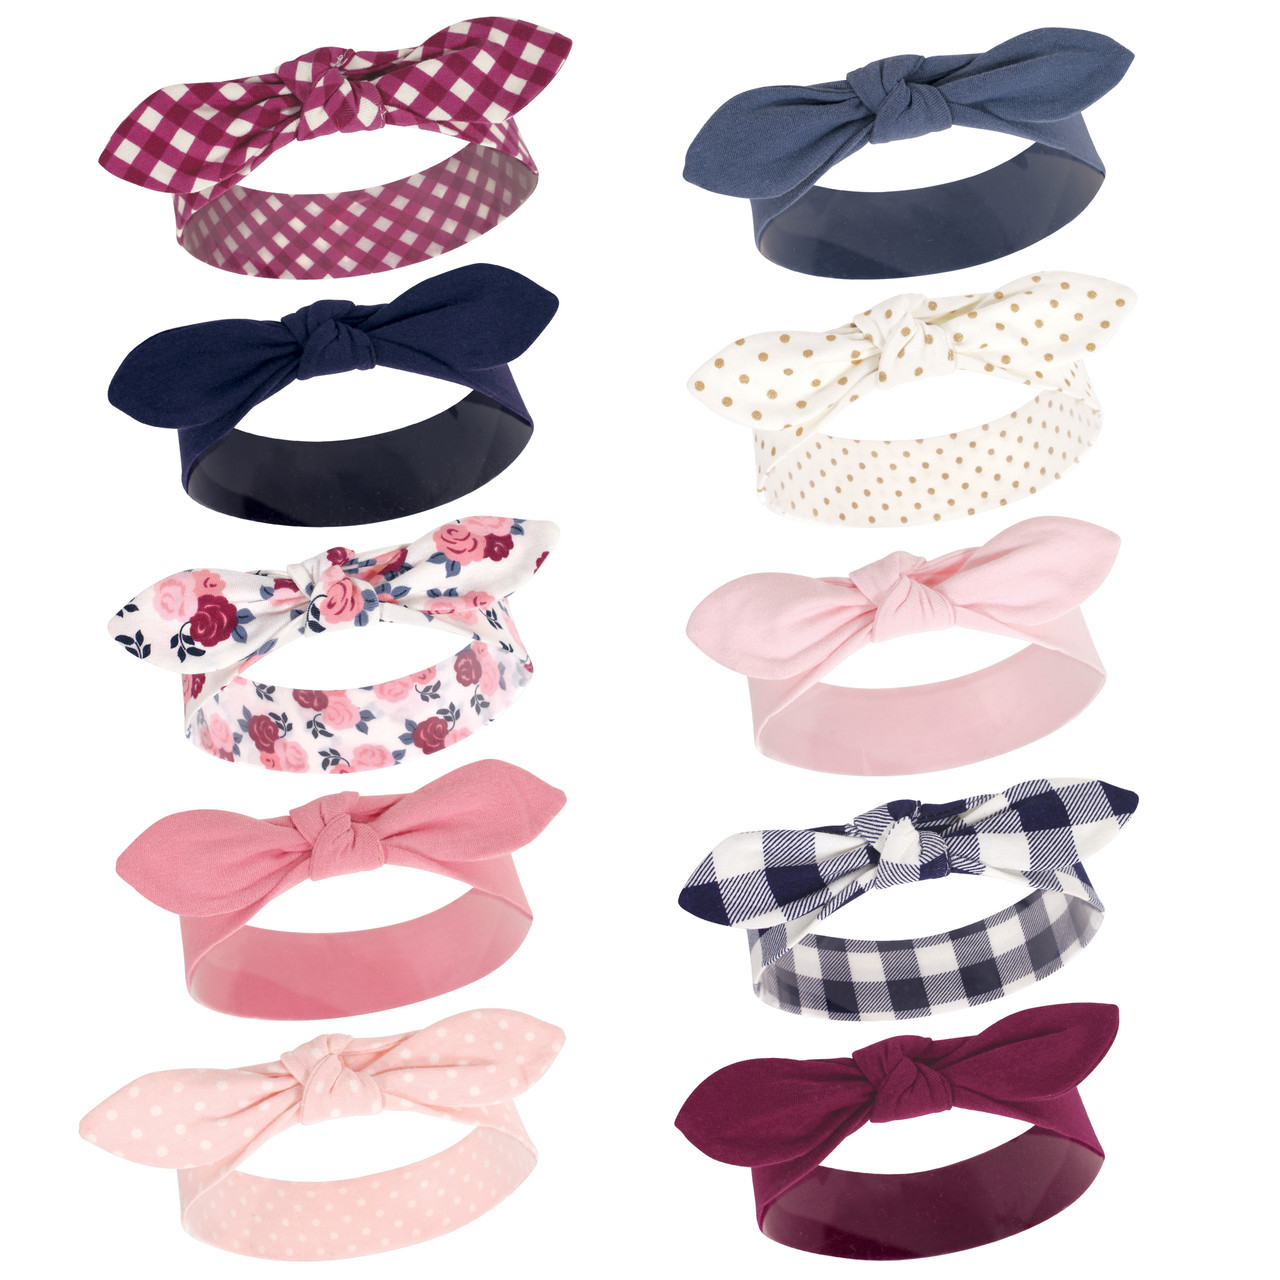 0-24 Months Bright Colors Hudson Baby Unisex Cotton and Synthetic Headbands